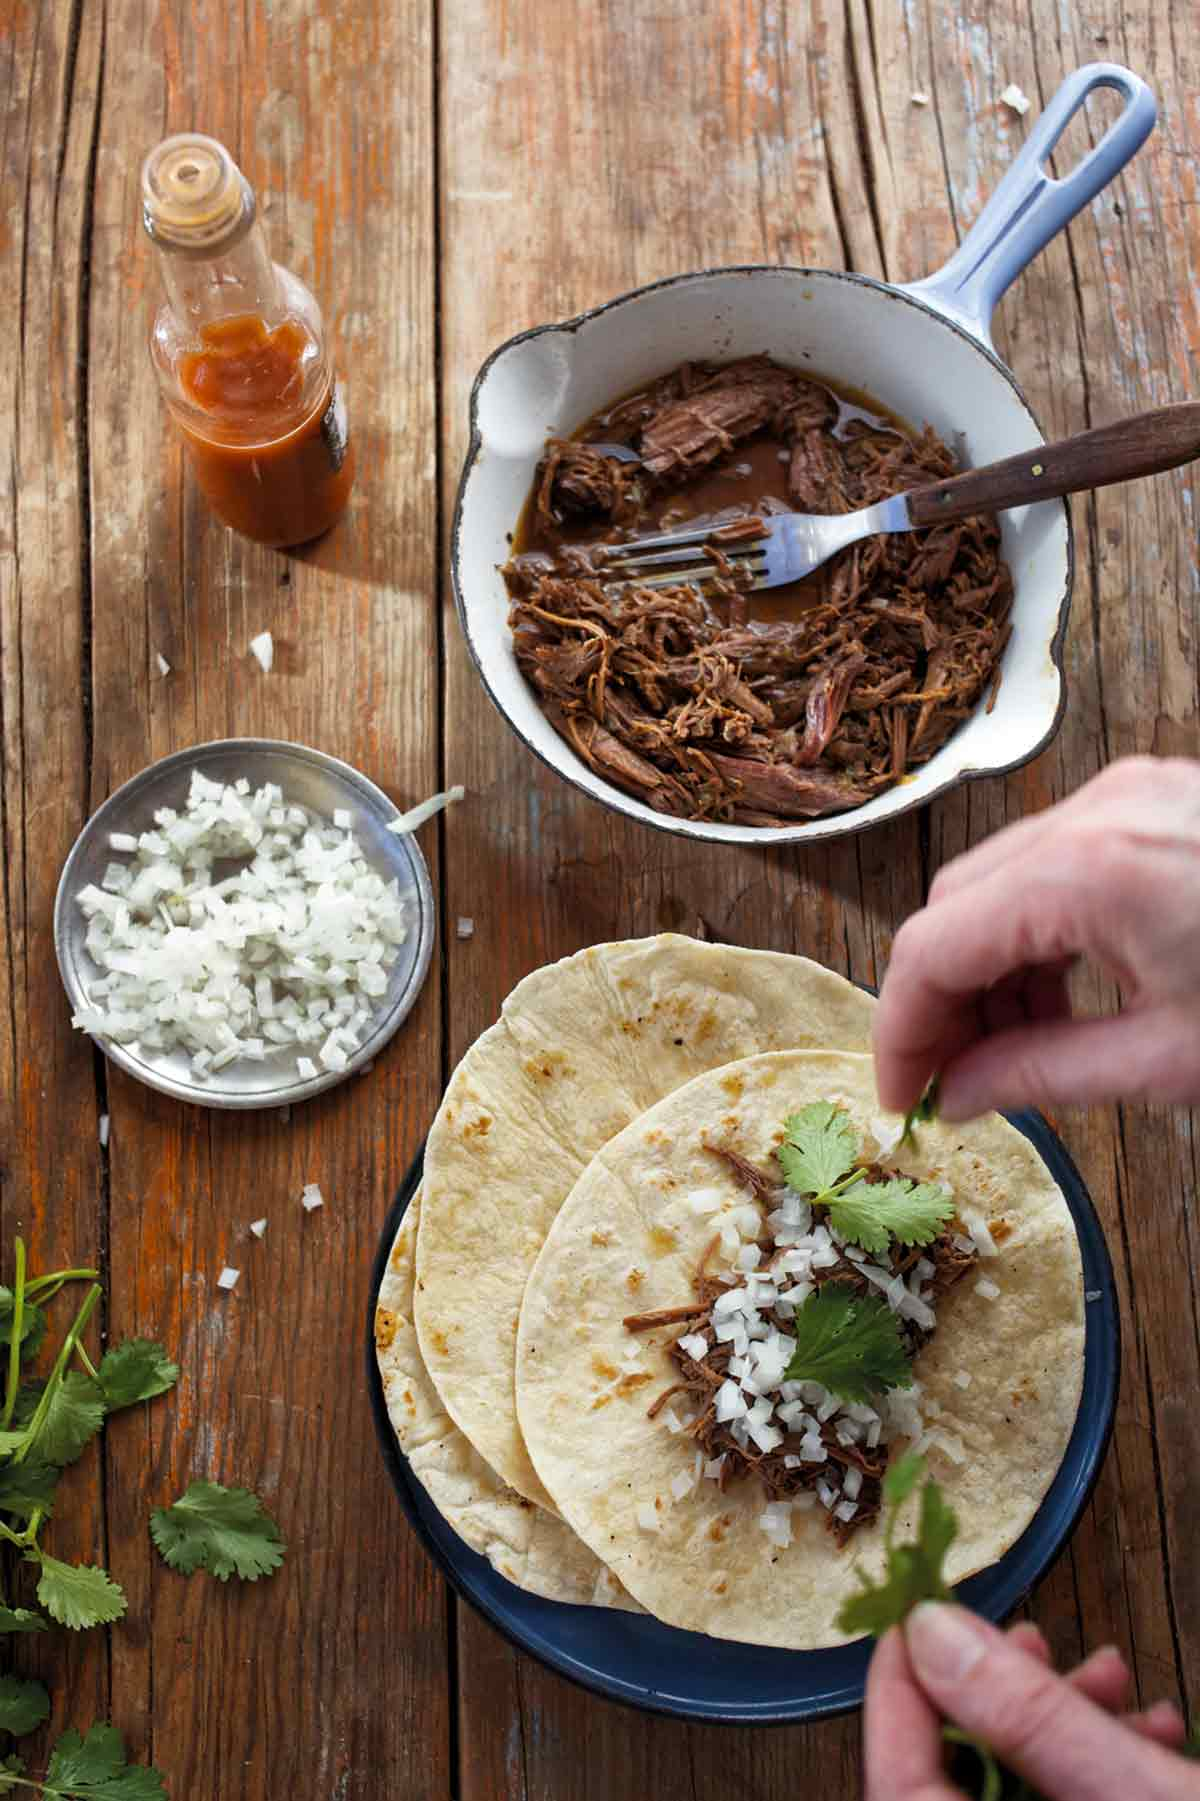 A person assembling a barbacoa taco with a pot of shredded barbacoa meat, a small dish of onions, a bottle of hot sauce, and some cilantro around the taco plate.